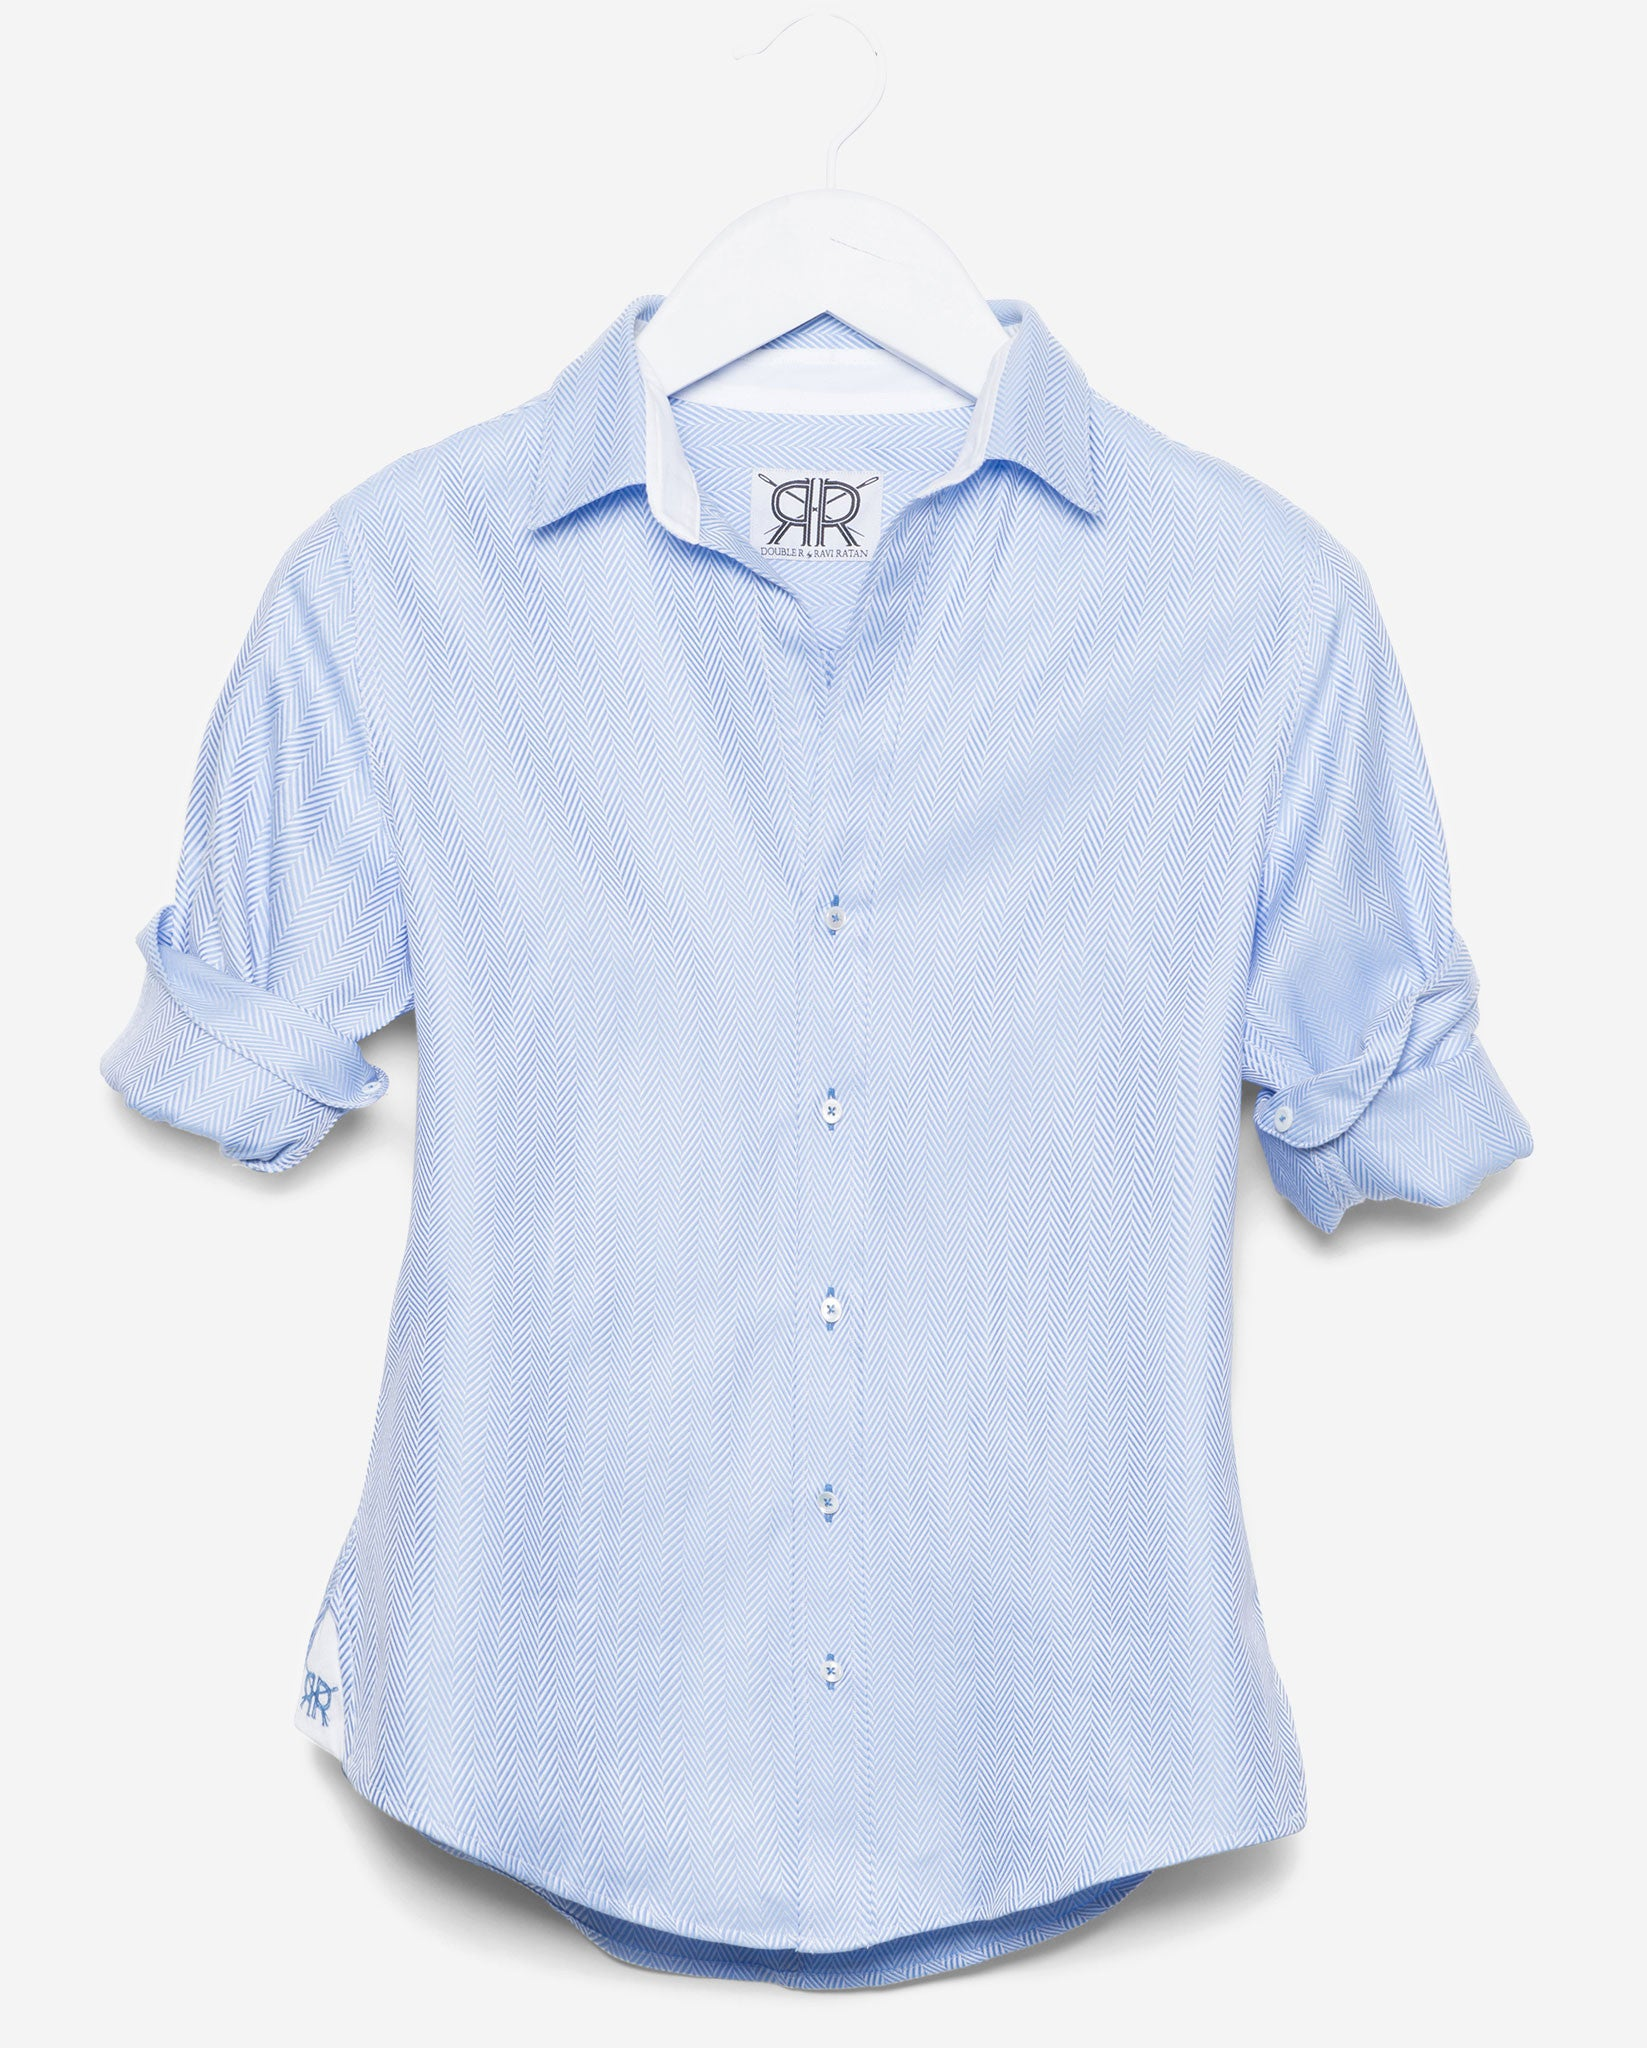 Tailored Shirt - Blue Herringbone Women's Button Down by Double R ...